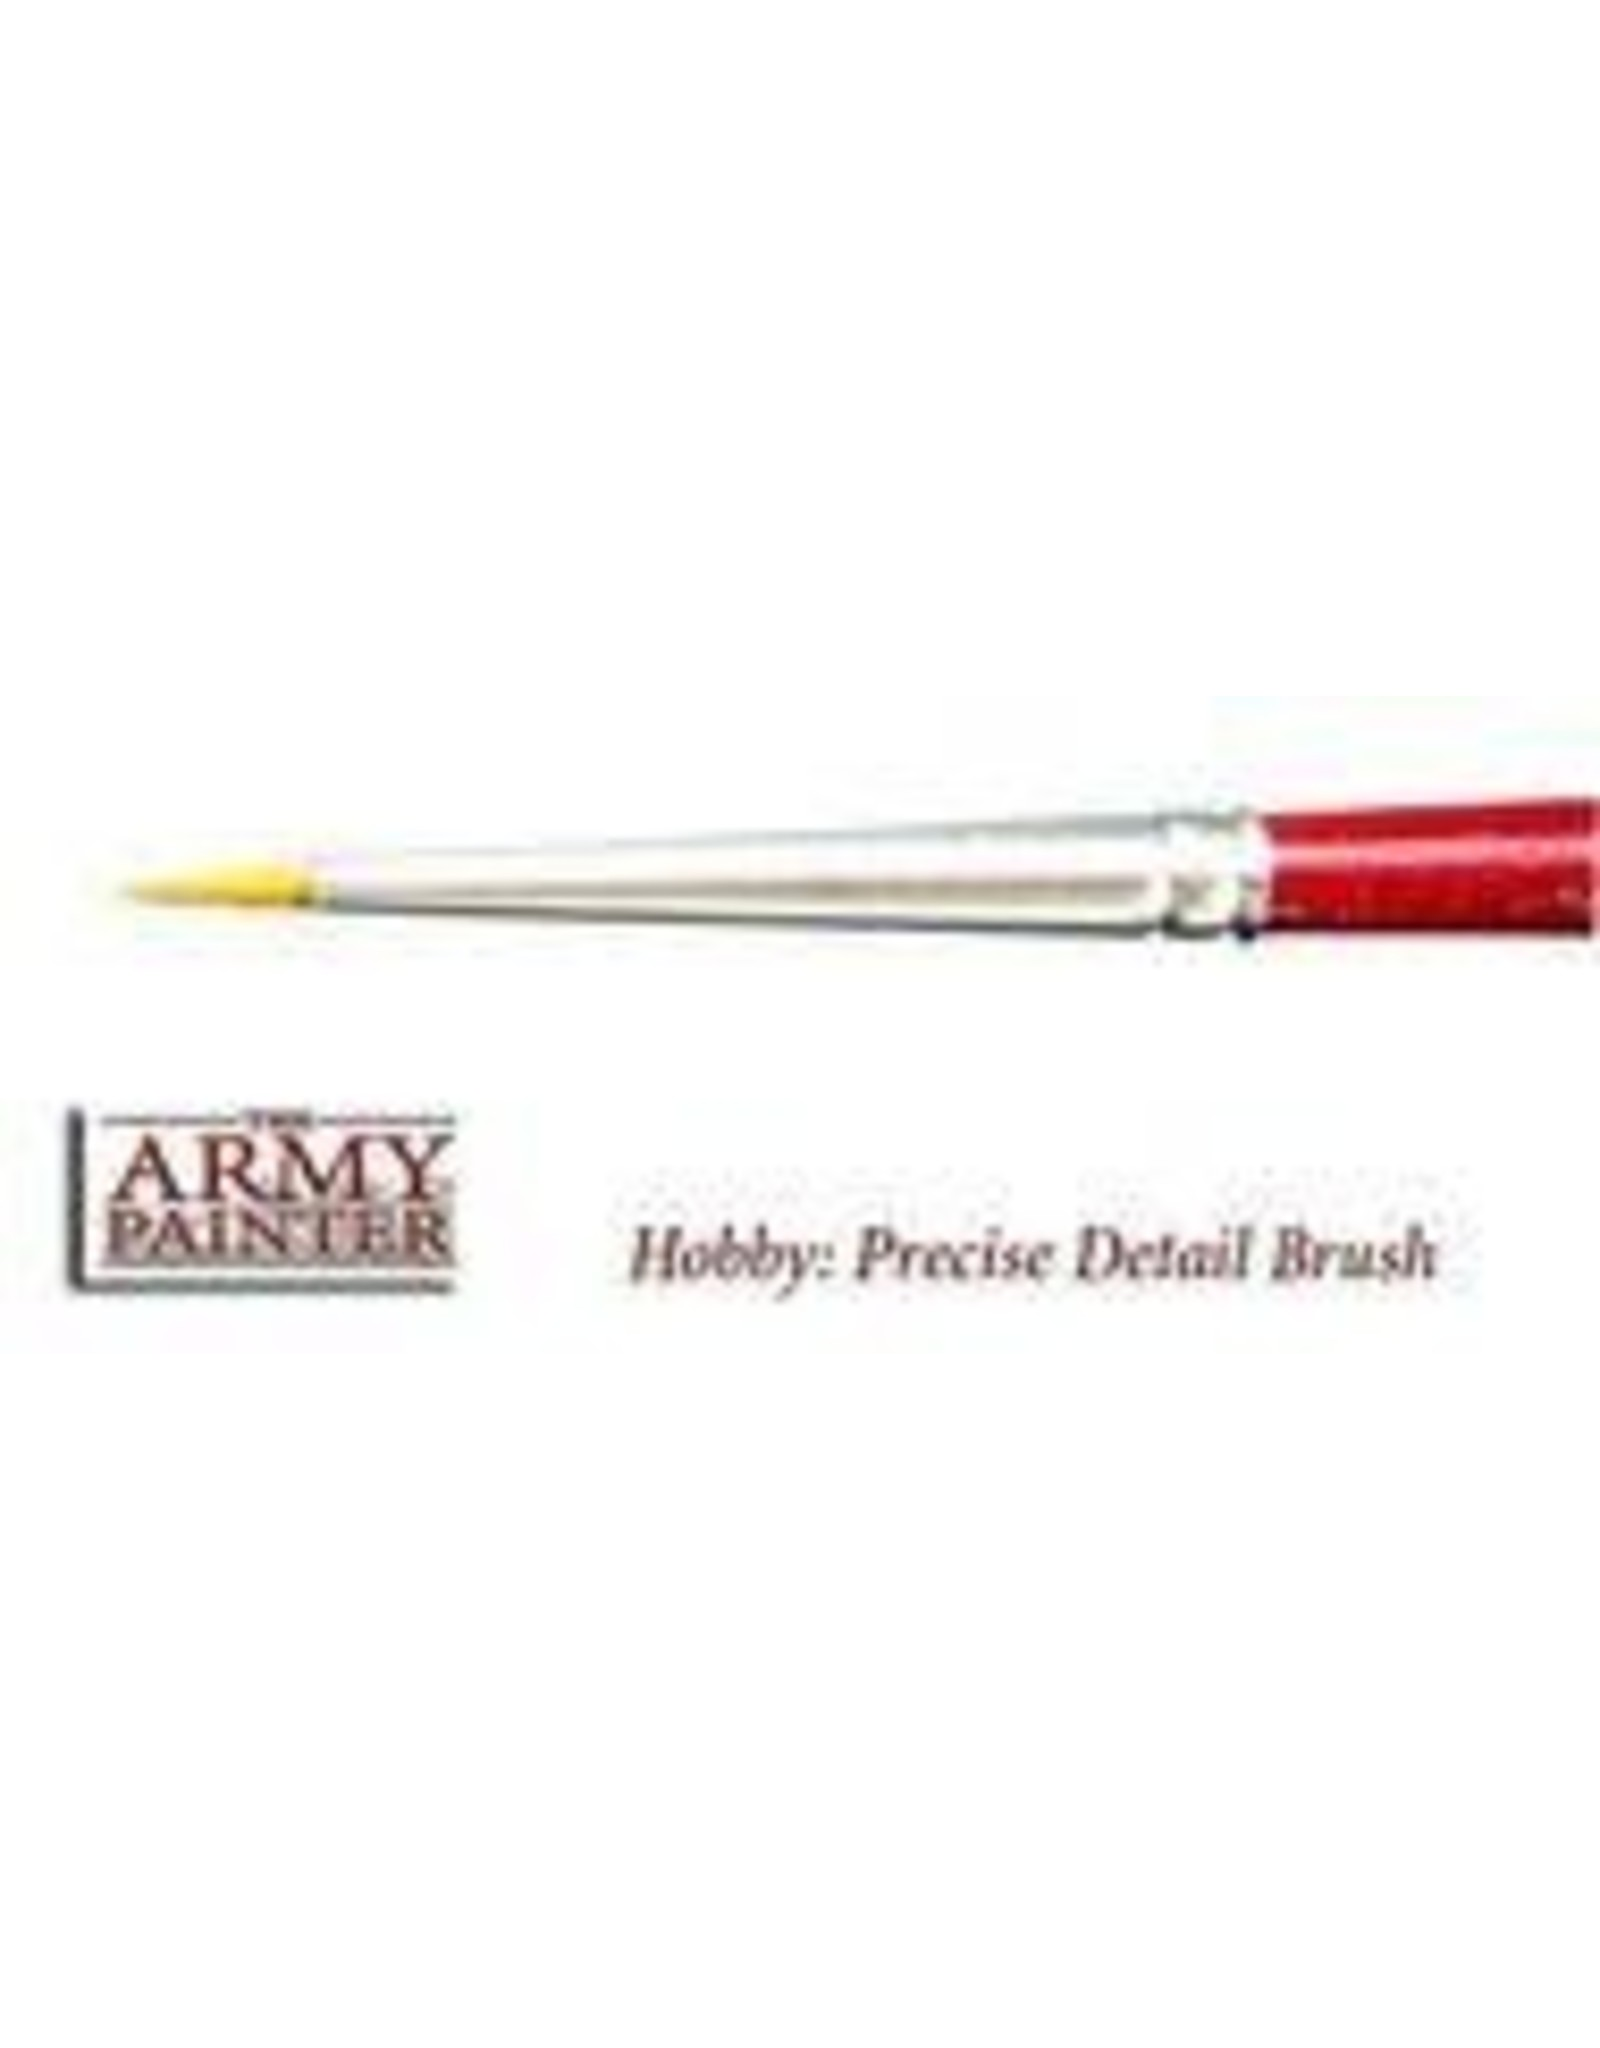 TAP Hobby Brush: Precise Detail